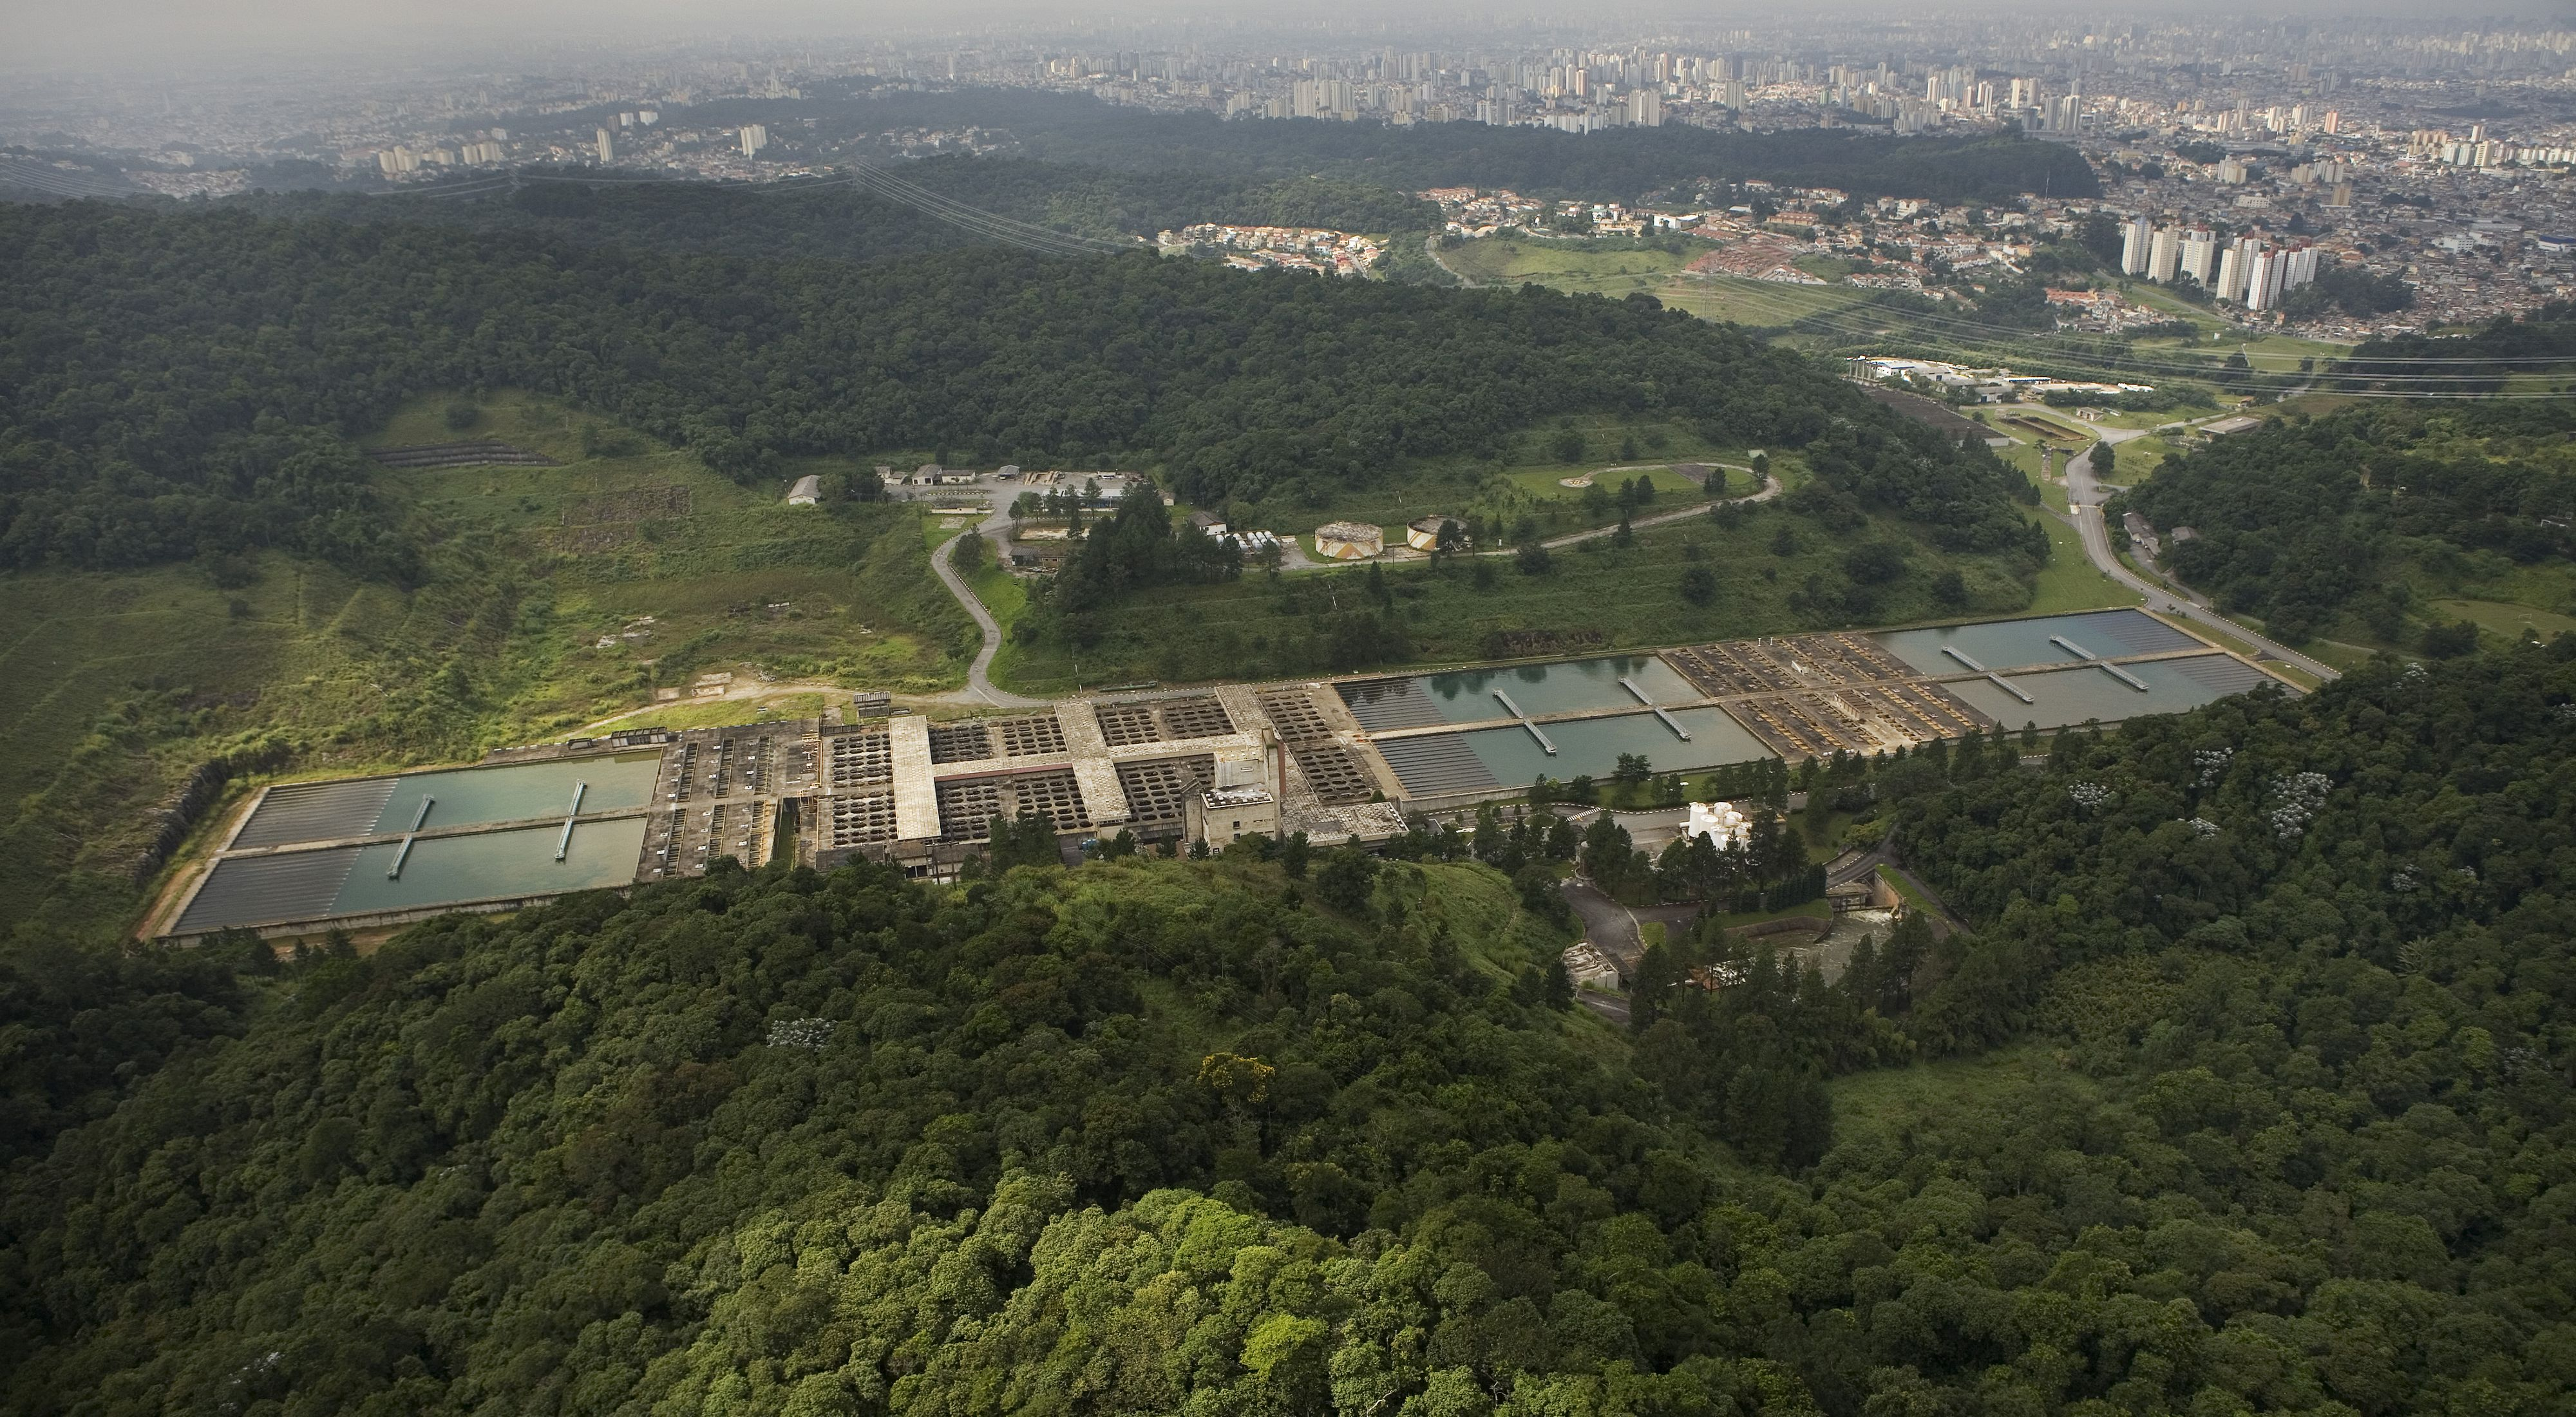 (ALL RIGHTS, ALL USES - CREDIT IS MANDATORY) Aerial view of the water purification plant, part of the Cantareira system which provides fifty percent of Sao paulo's drinking water. Some of the Sao Paulo urban area can be seen beyond the water treatment facility. PHOTO CREDIT: ©Scott Warren